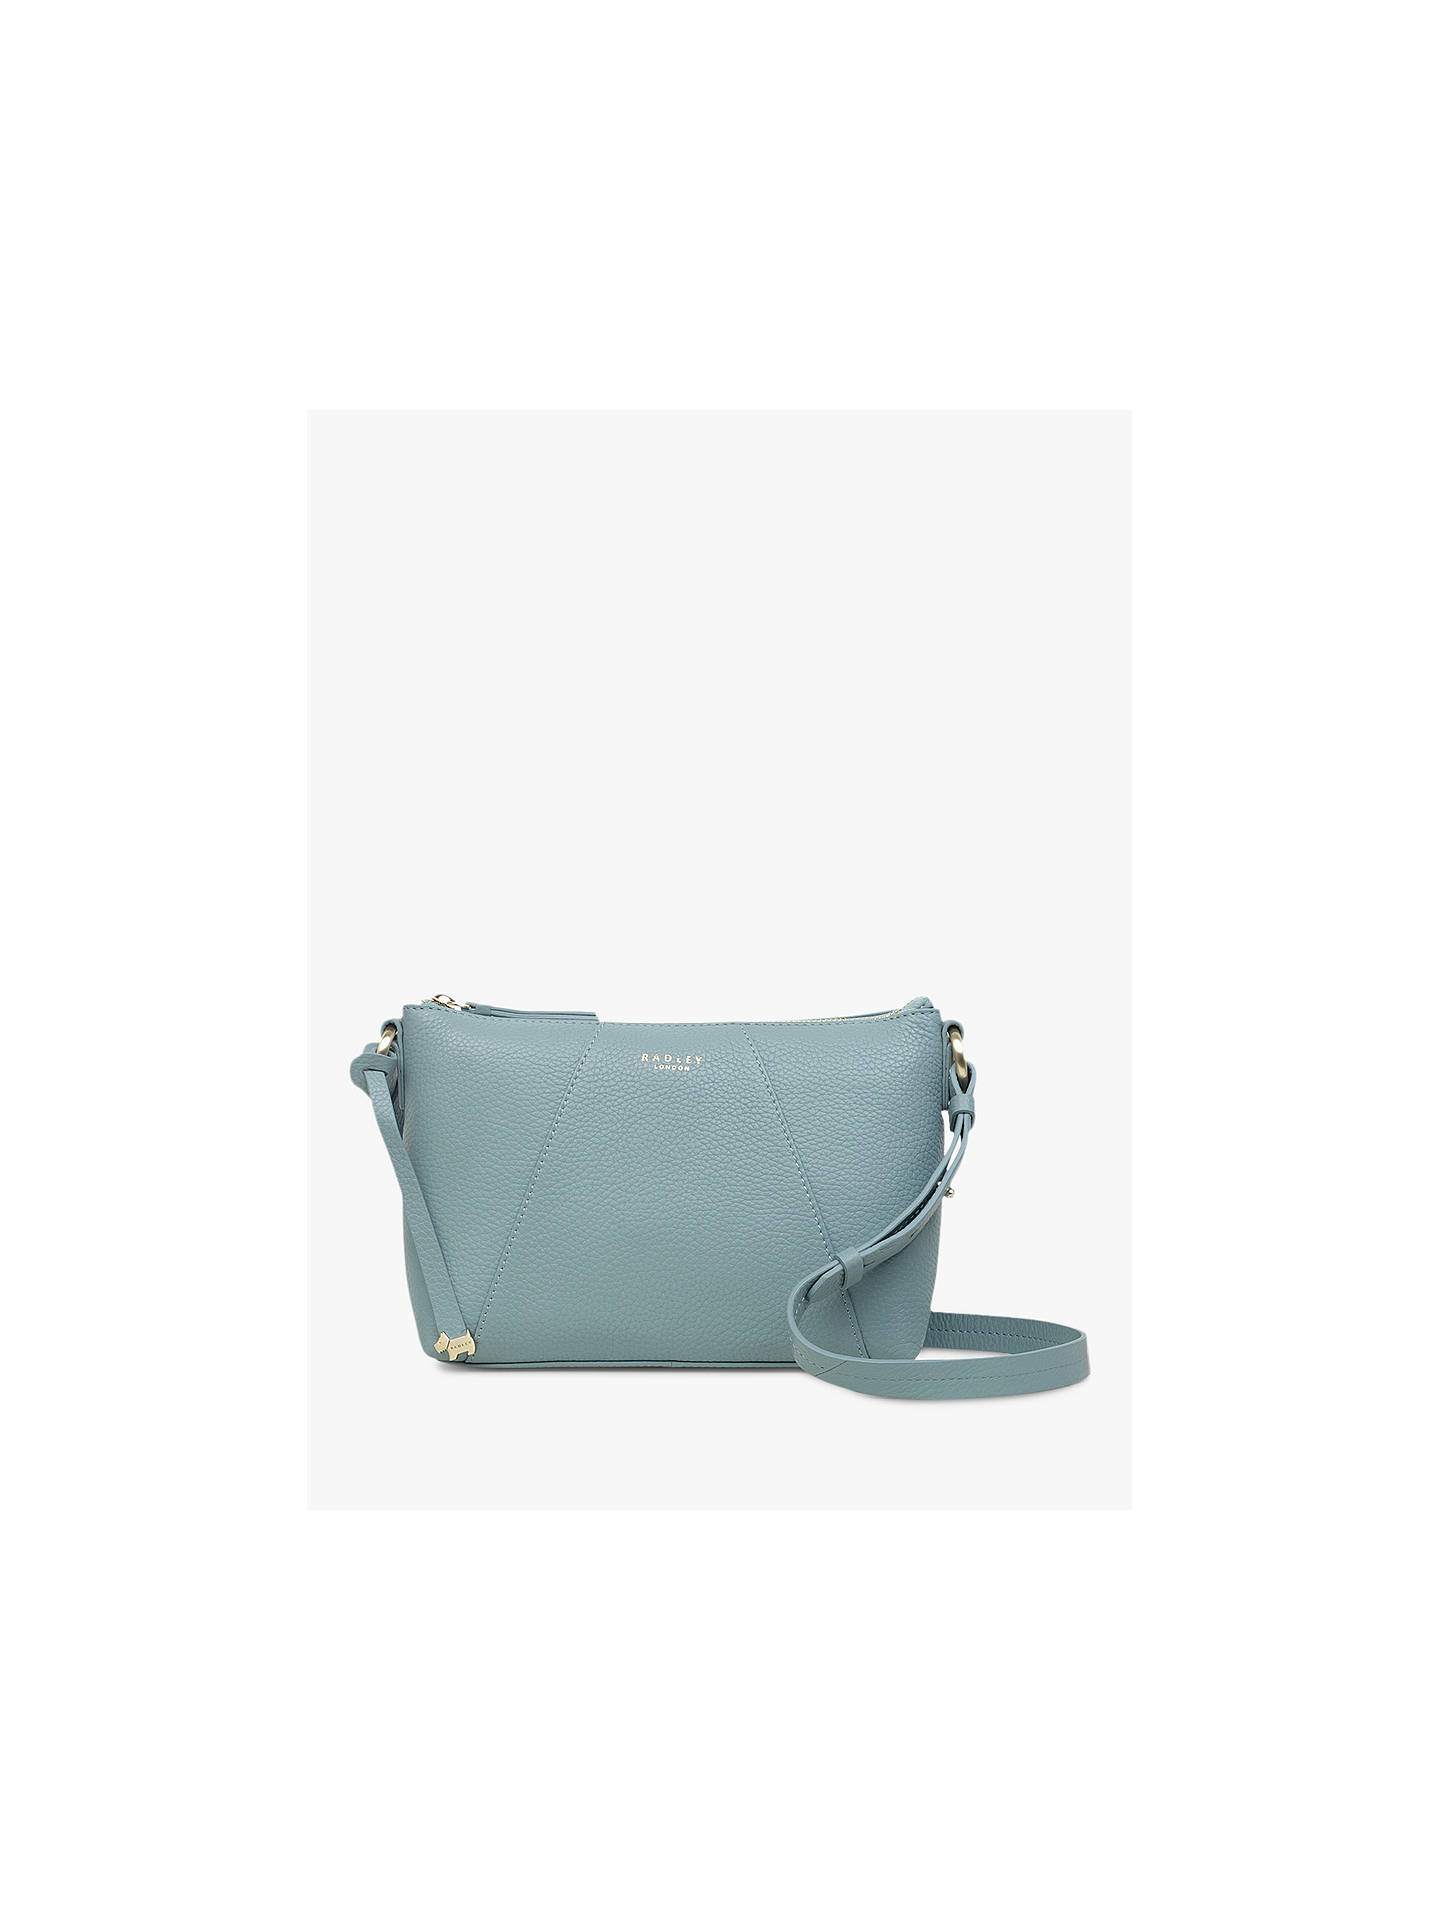 Buy Radley Wood Street Medium Leather Zip Top Cross Body Bag, Teal Online at johnlewis.com